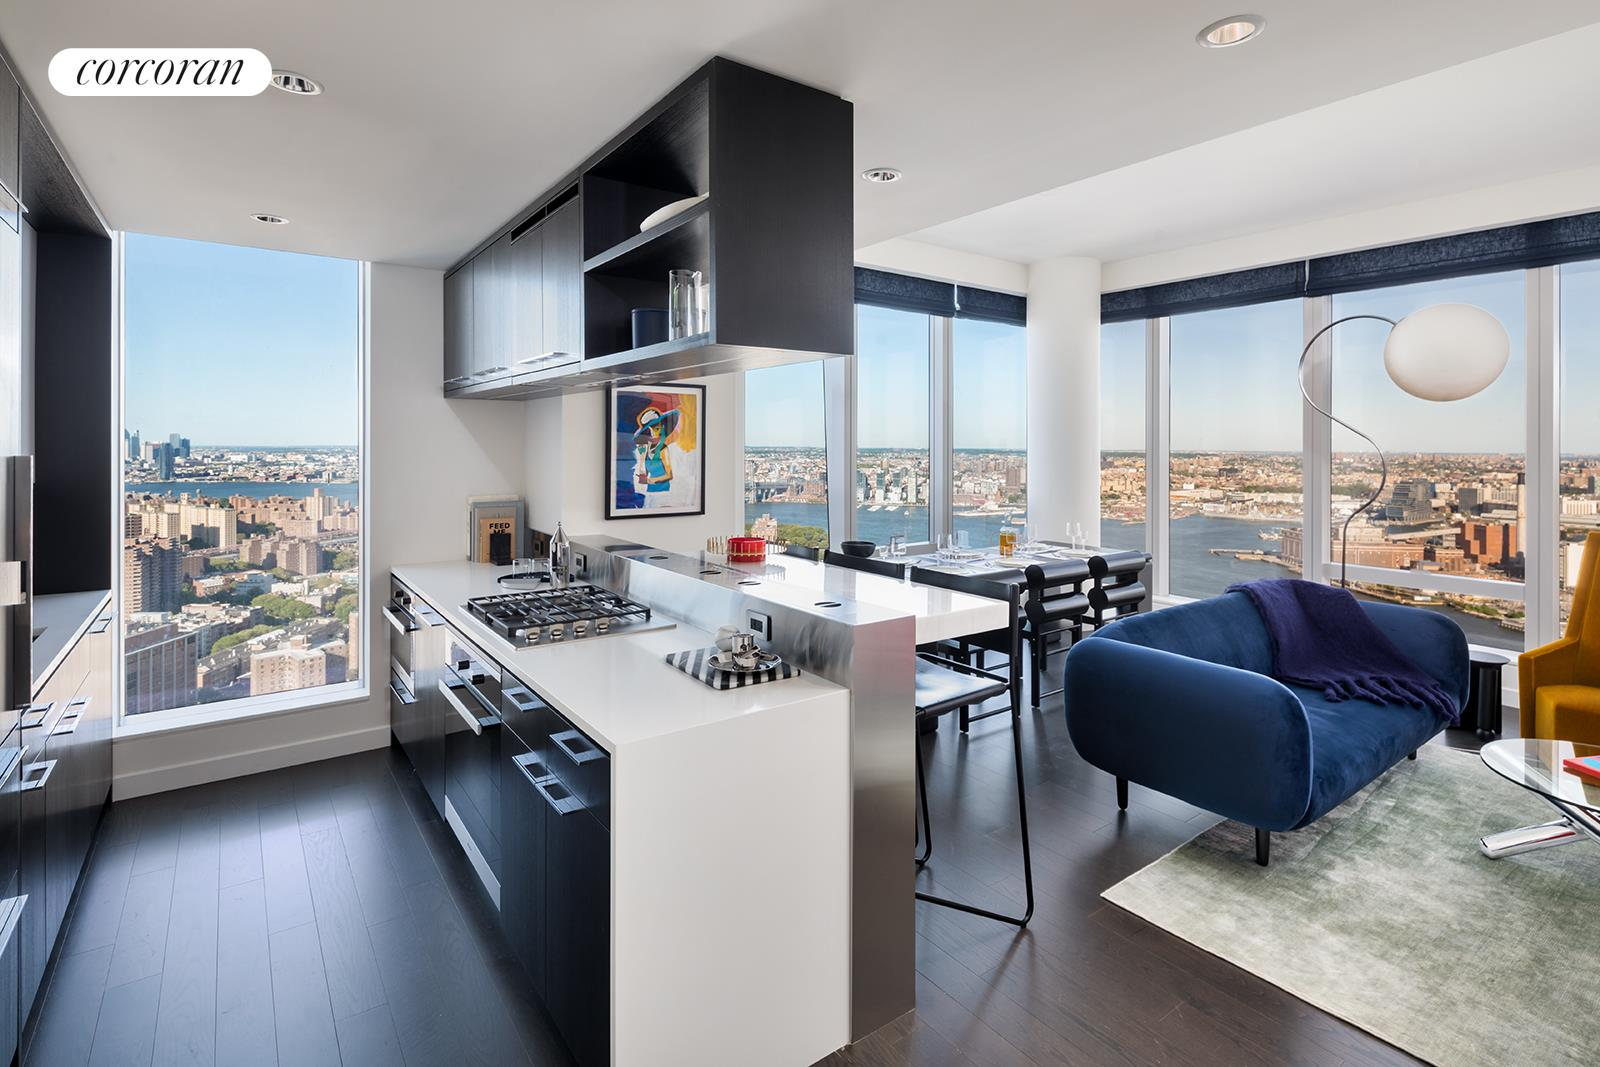 Apartment for sale at 252 South Street, Apt 75F